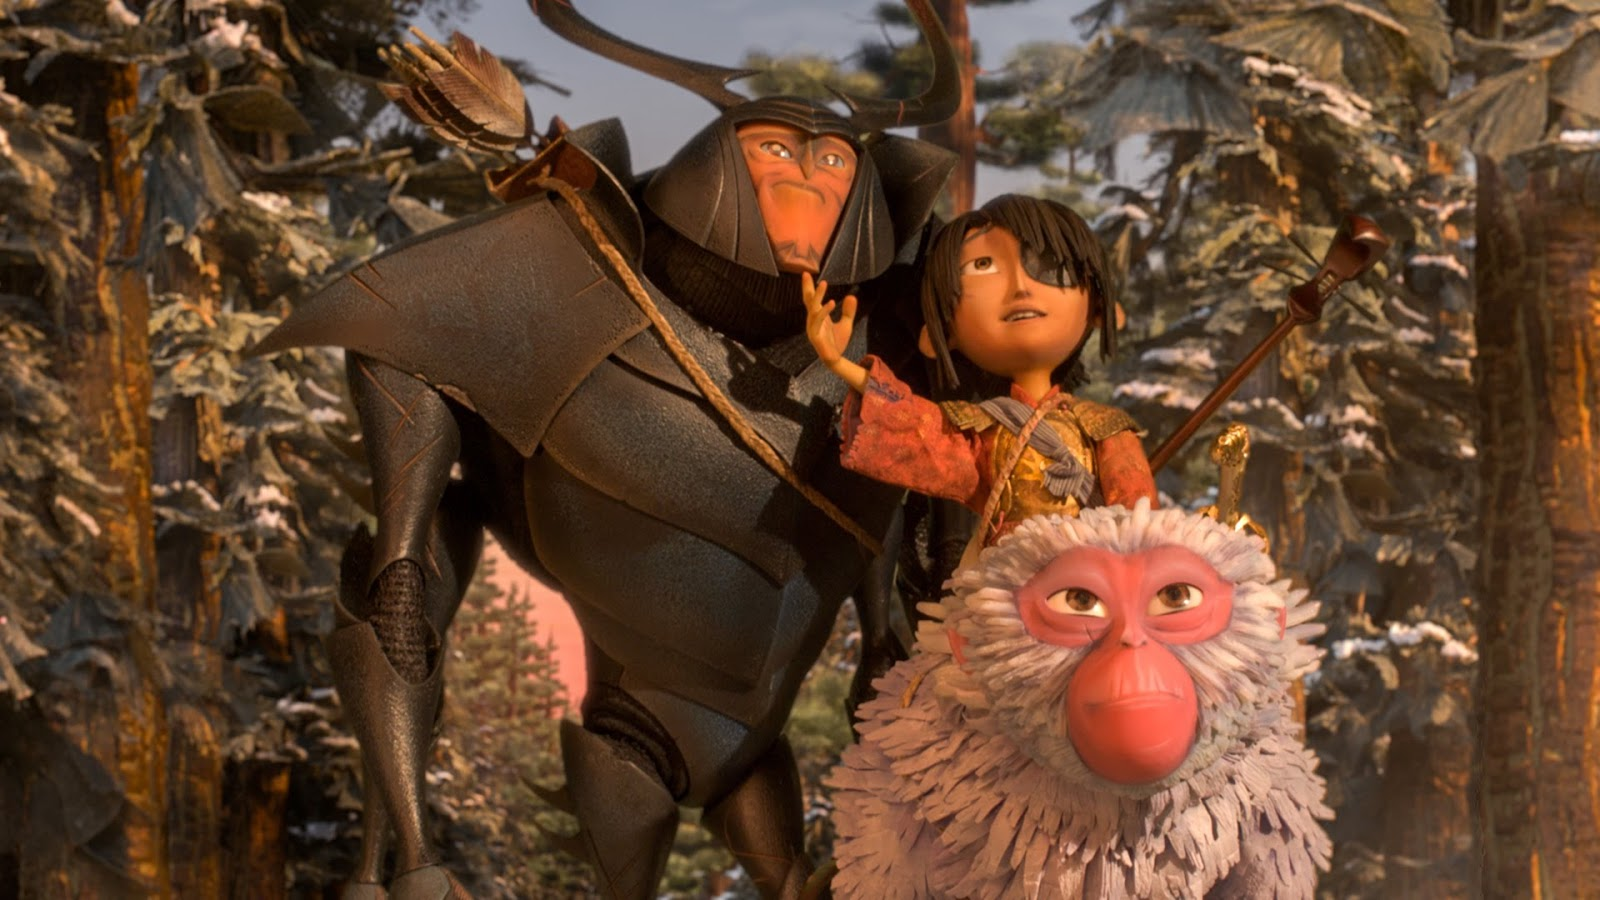 MOVIES: Kubo and the Two Strings - Review